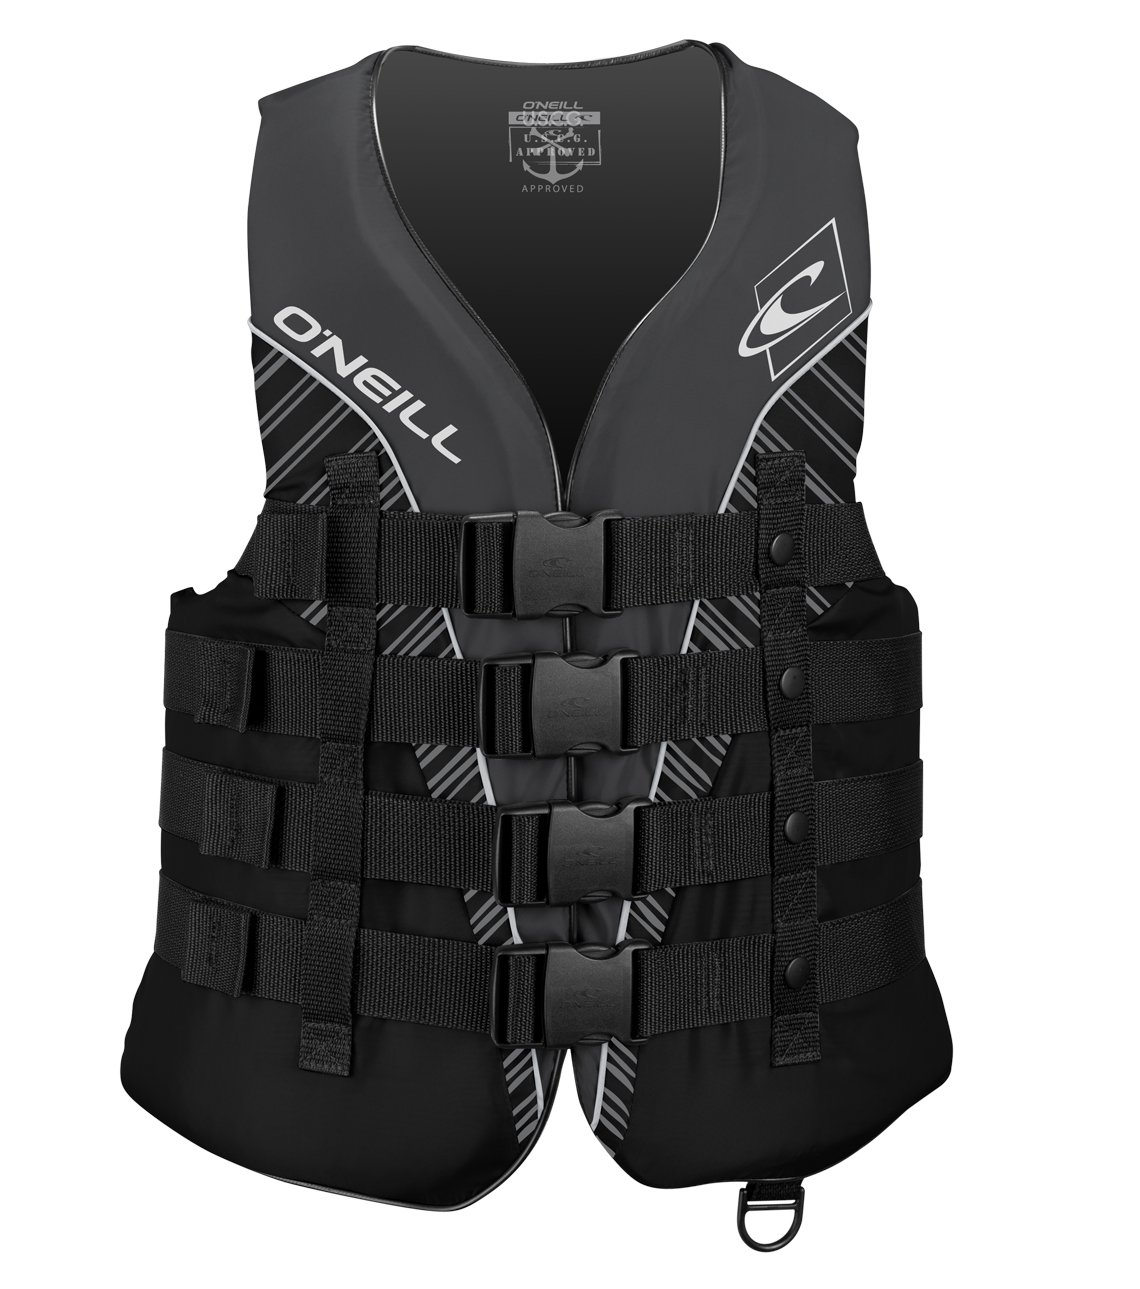 O'Neill  Men's Superlite USCG Life Vest, Black/Black/Smoke/White,Small by O'Neill Wetsuits (Image #1)